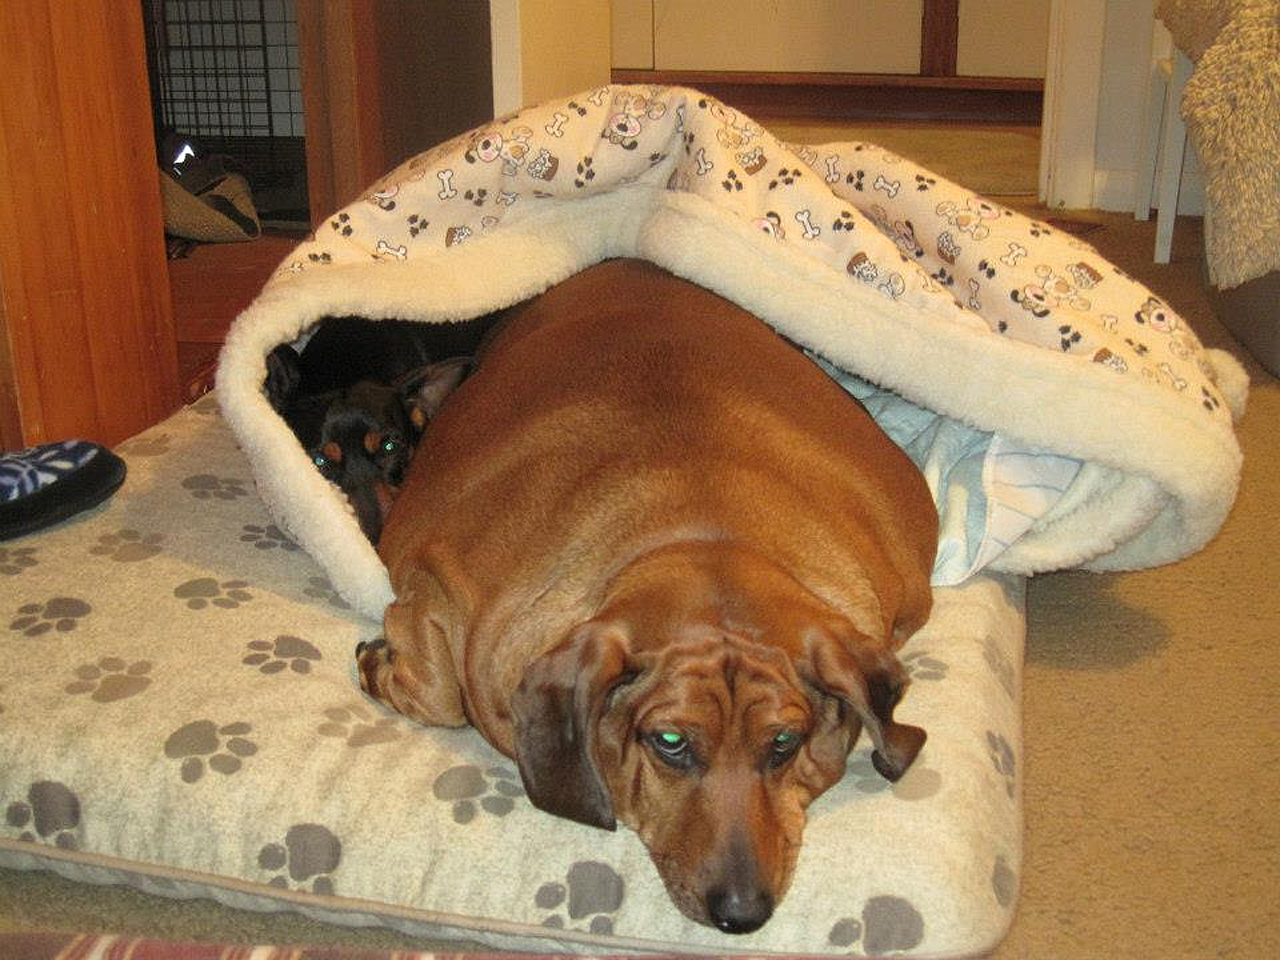 Formerly Obese Dachshund Obie Gets Surgery To Remove